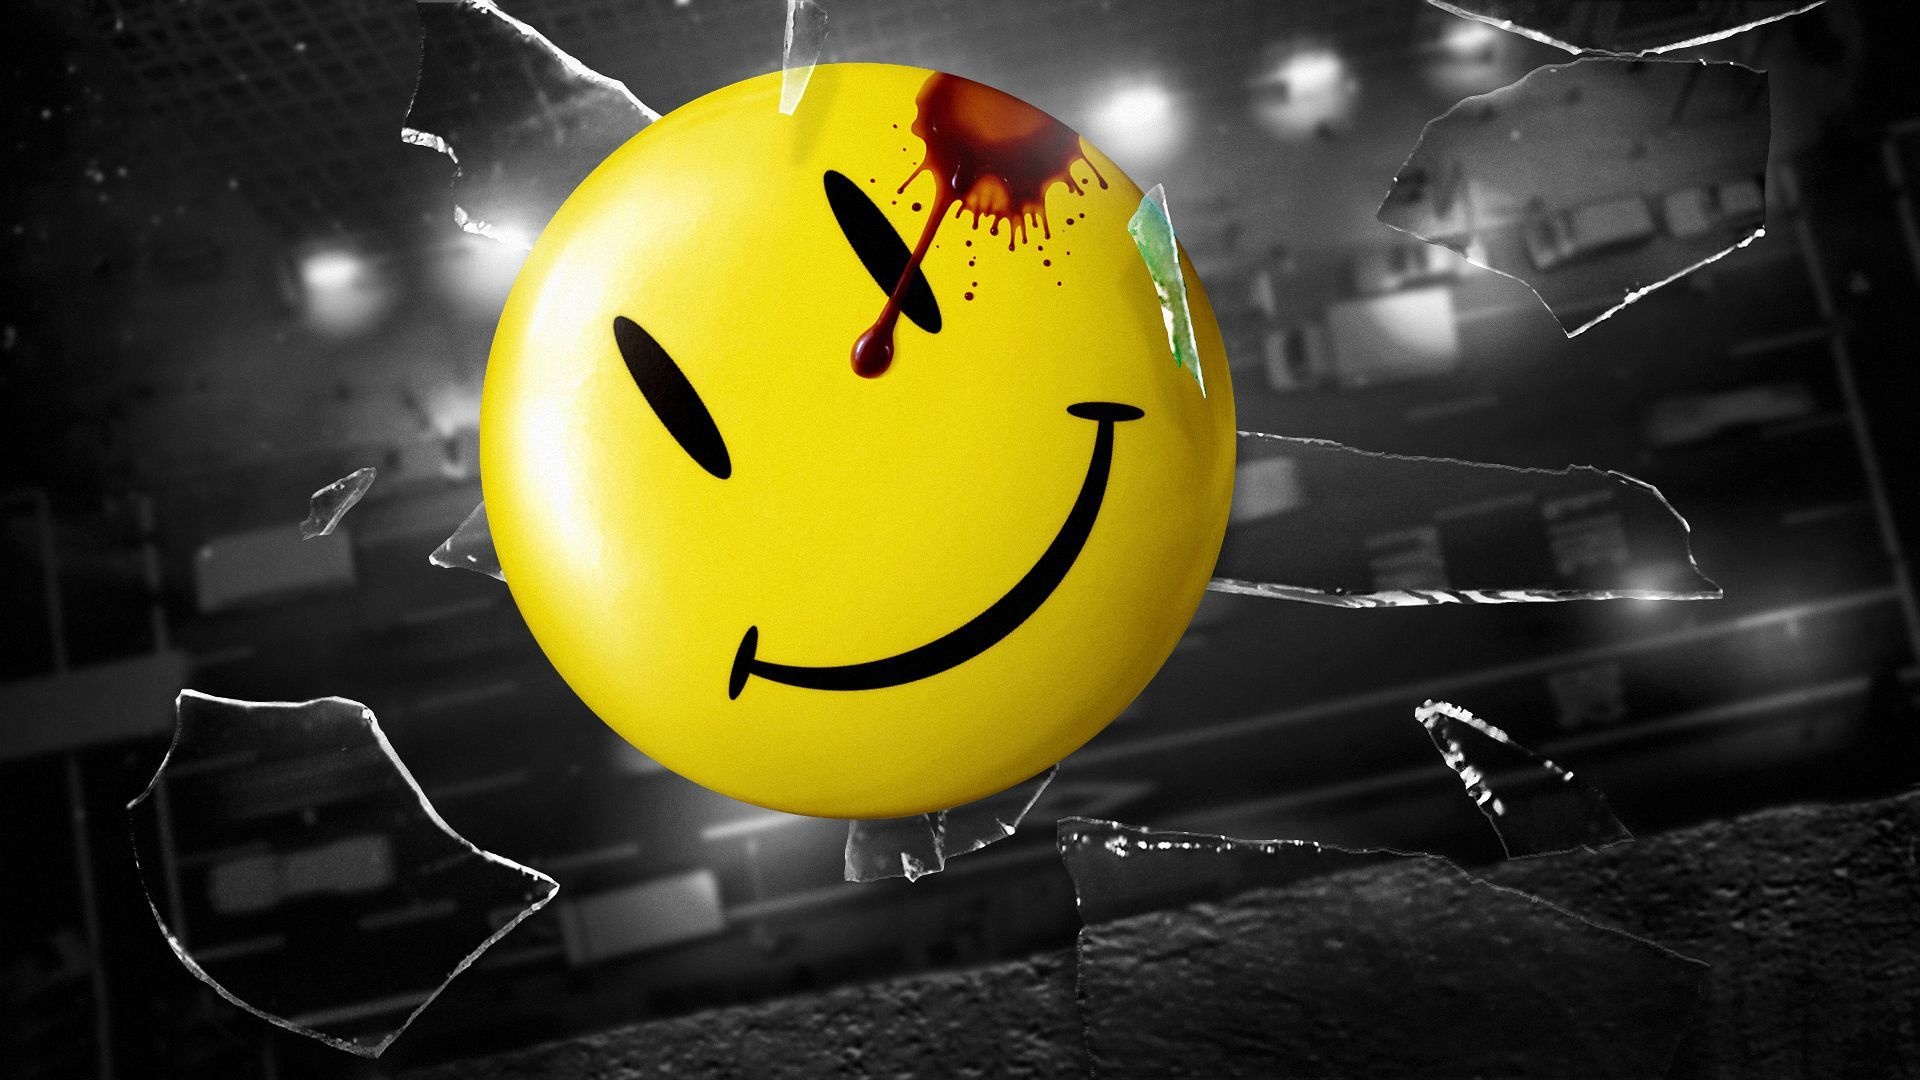 Smiley Face Wallpaper & Screensavers